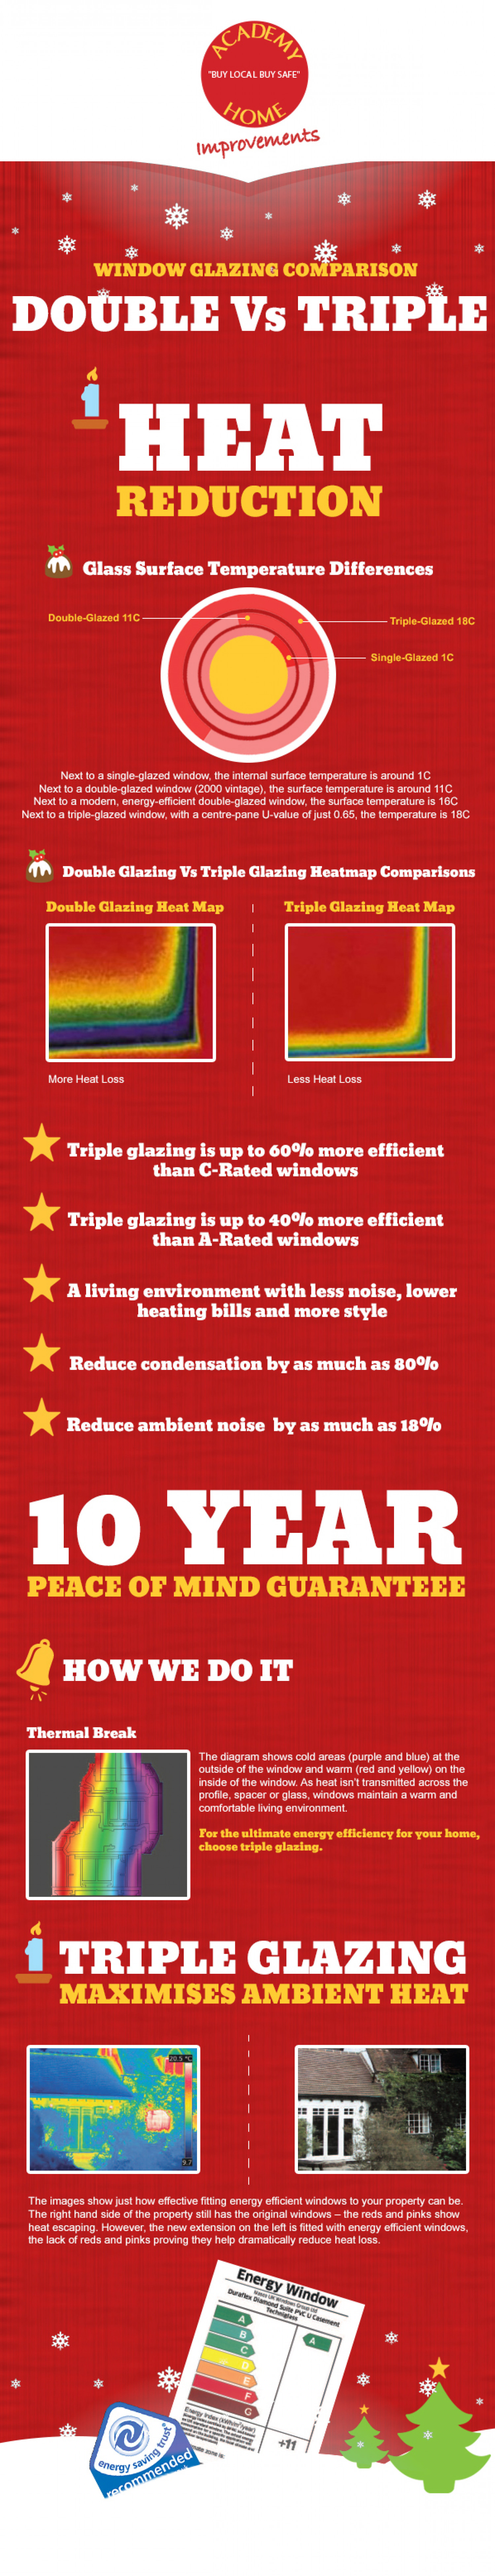 Window Glazing Comparison Infographic